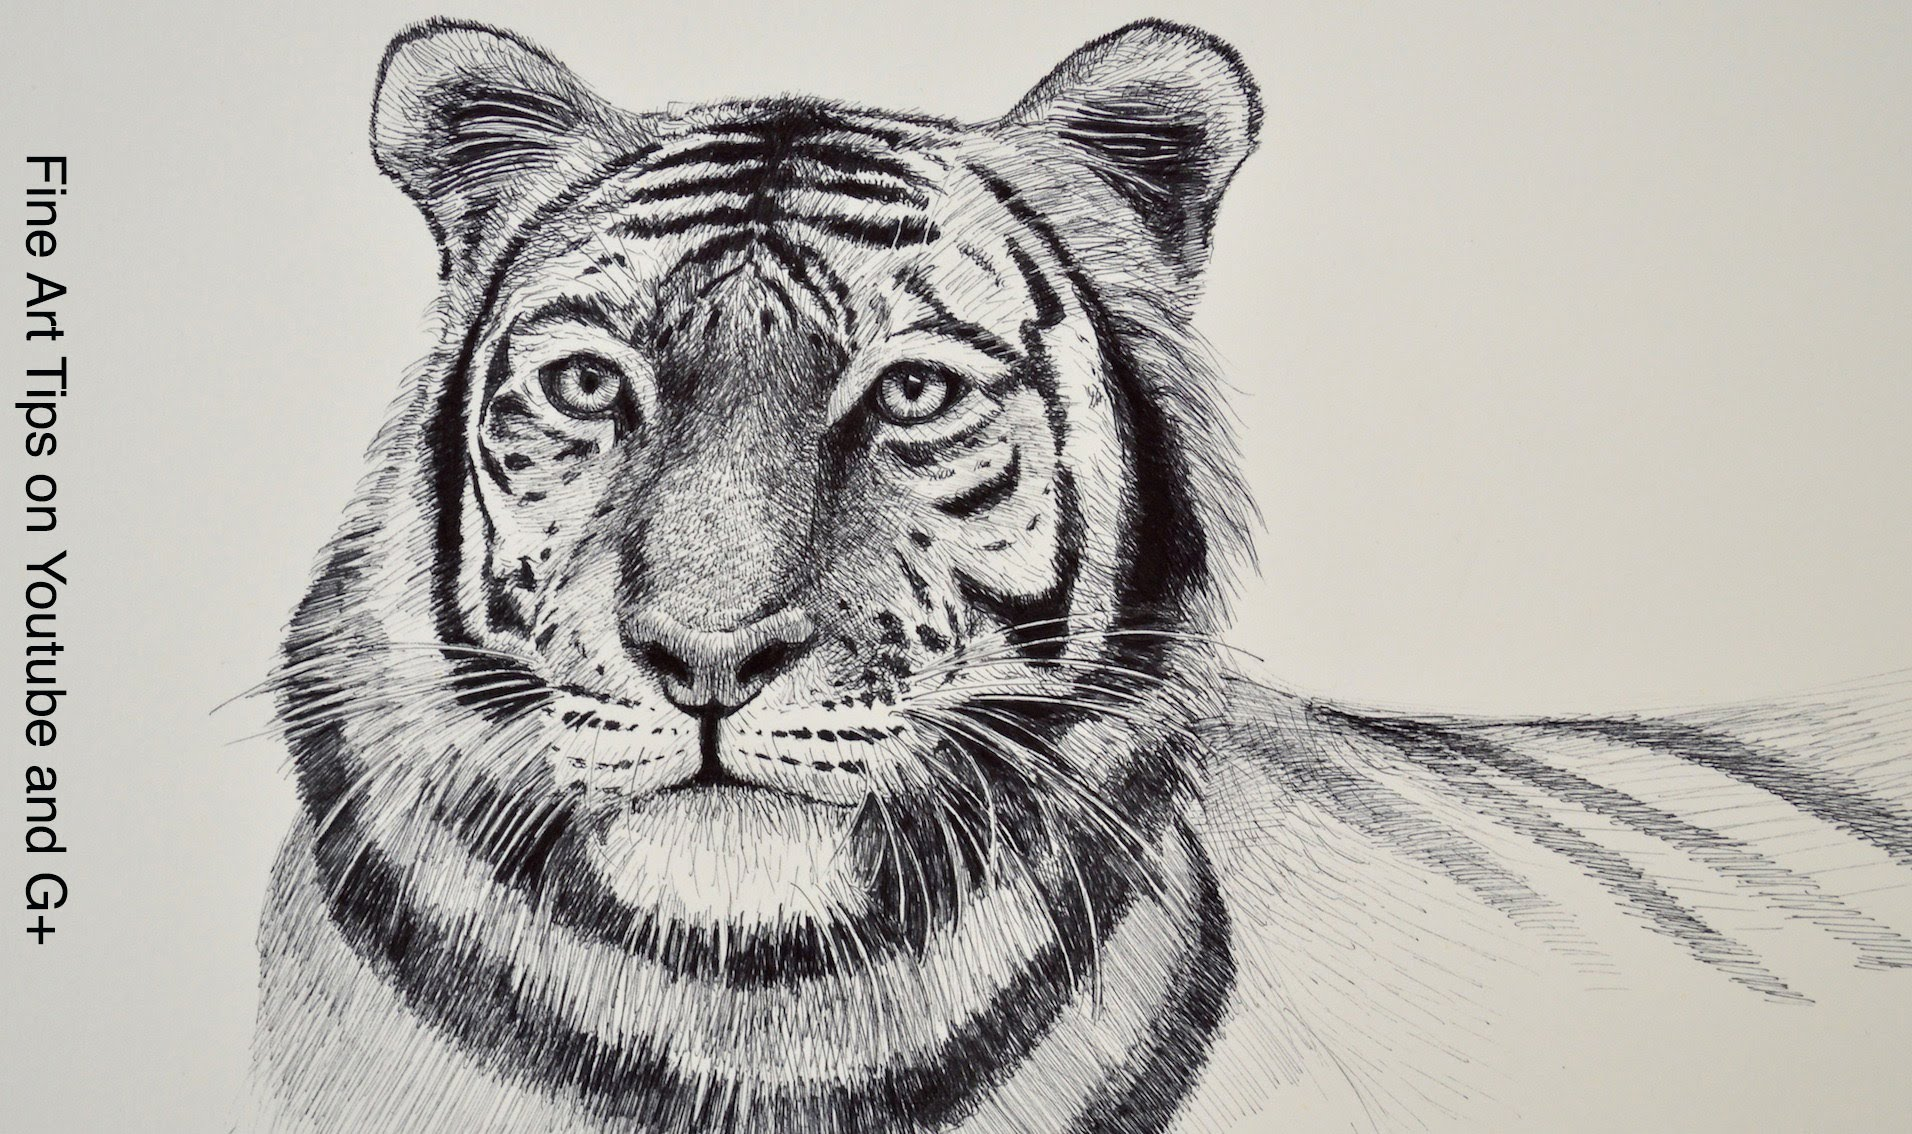 Drawn pen tiger Draw With YouTube Tiger Head